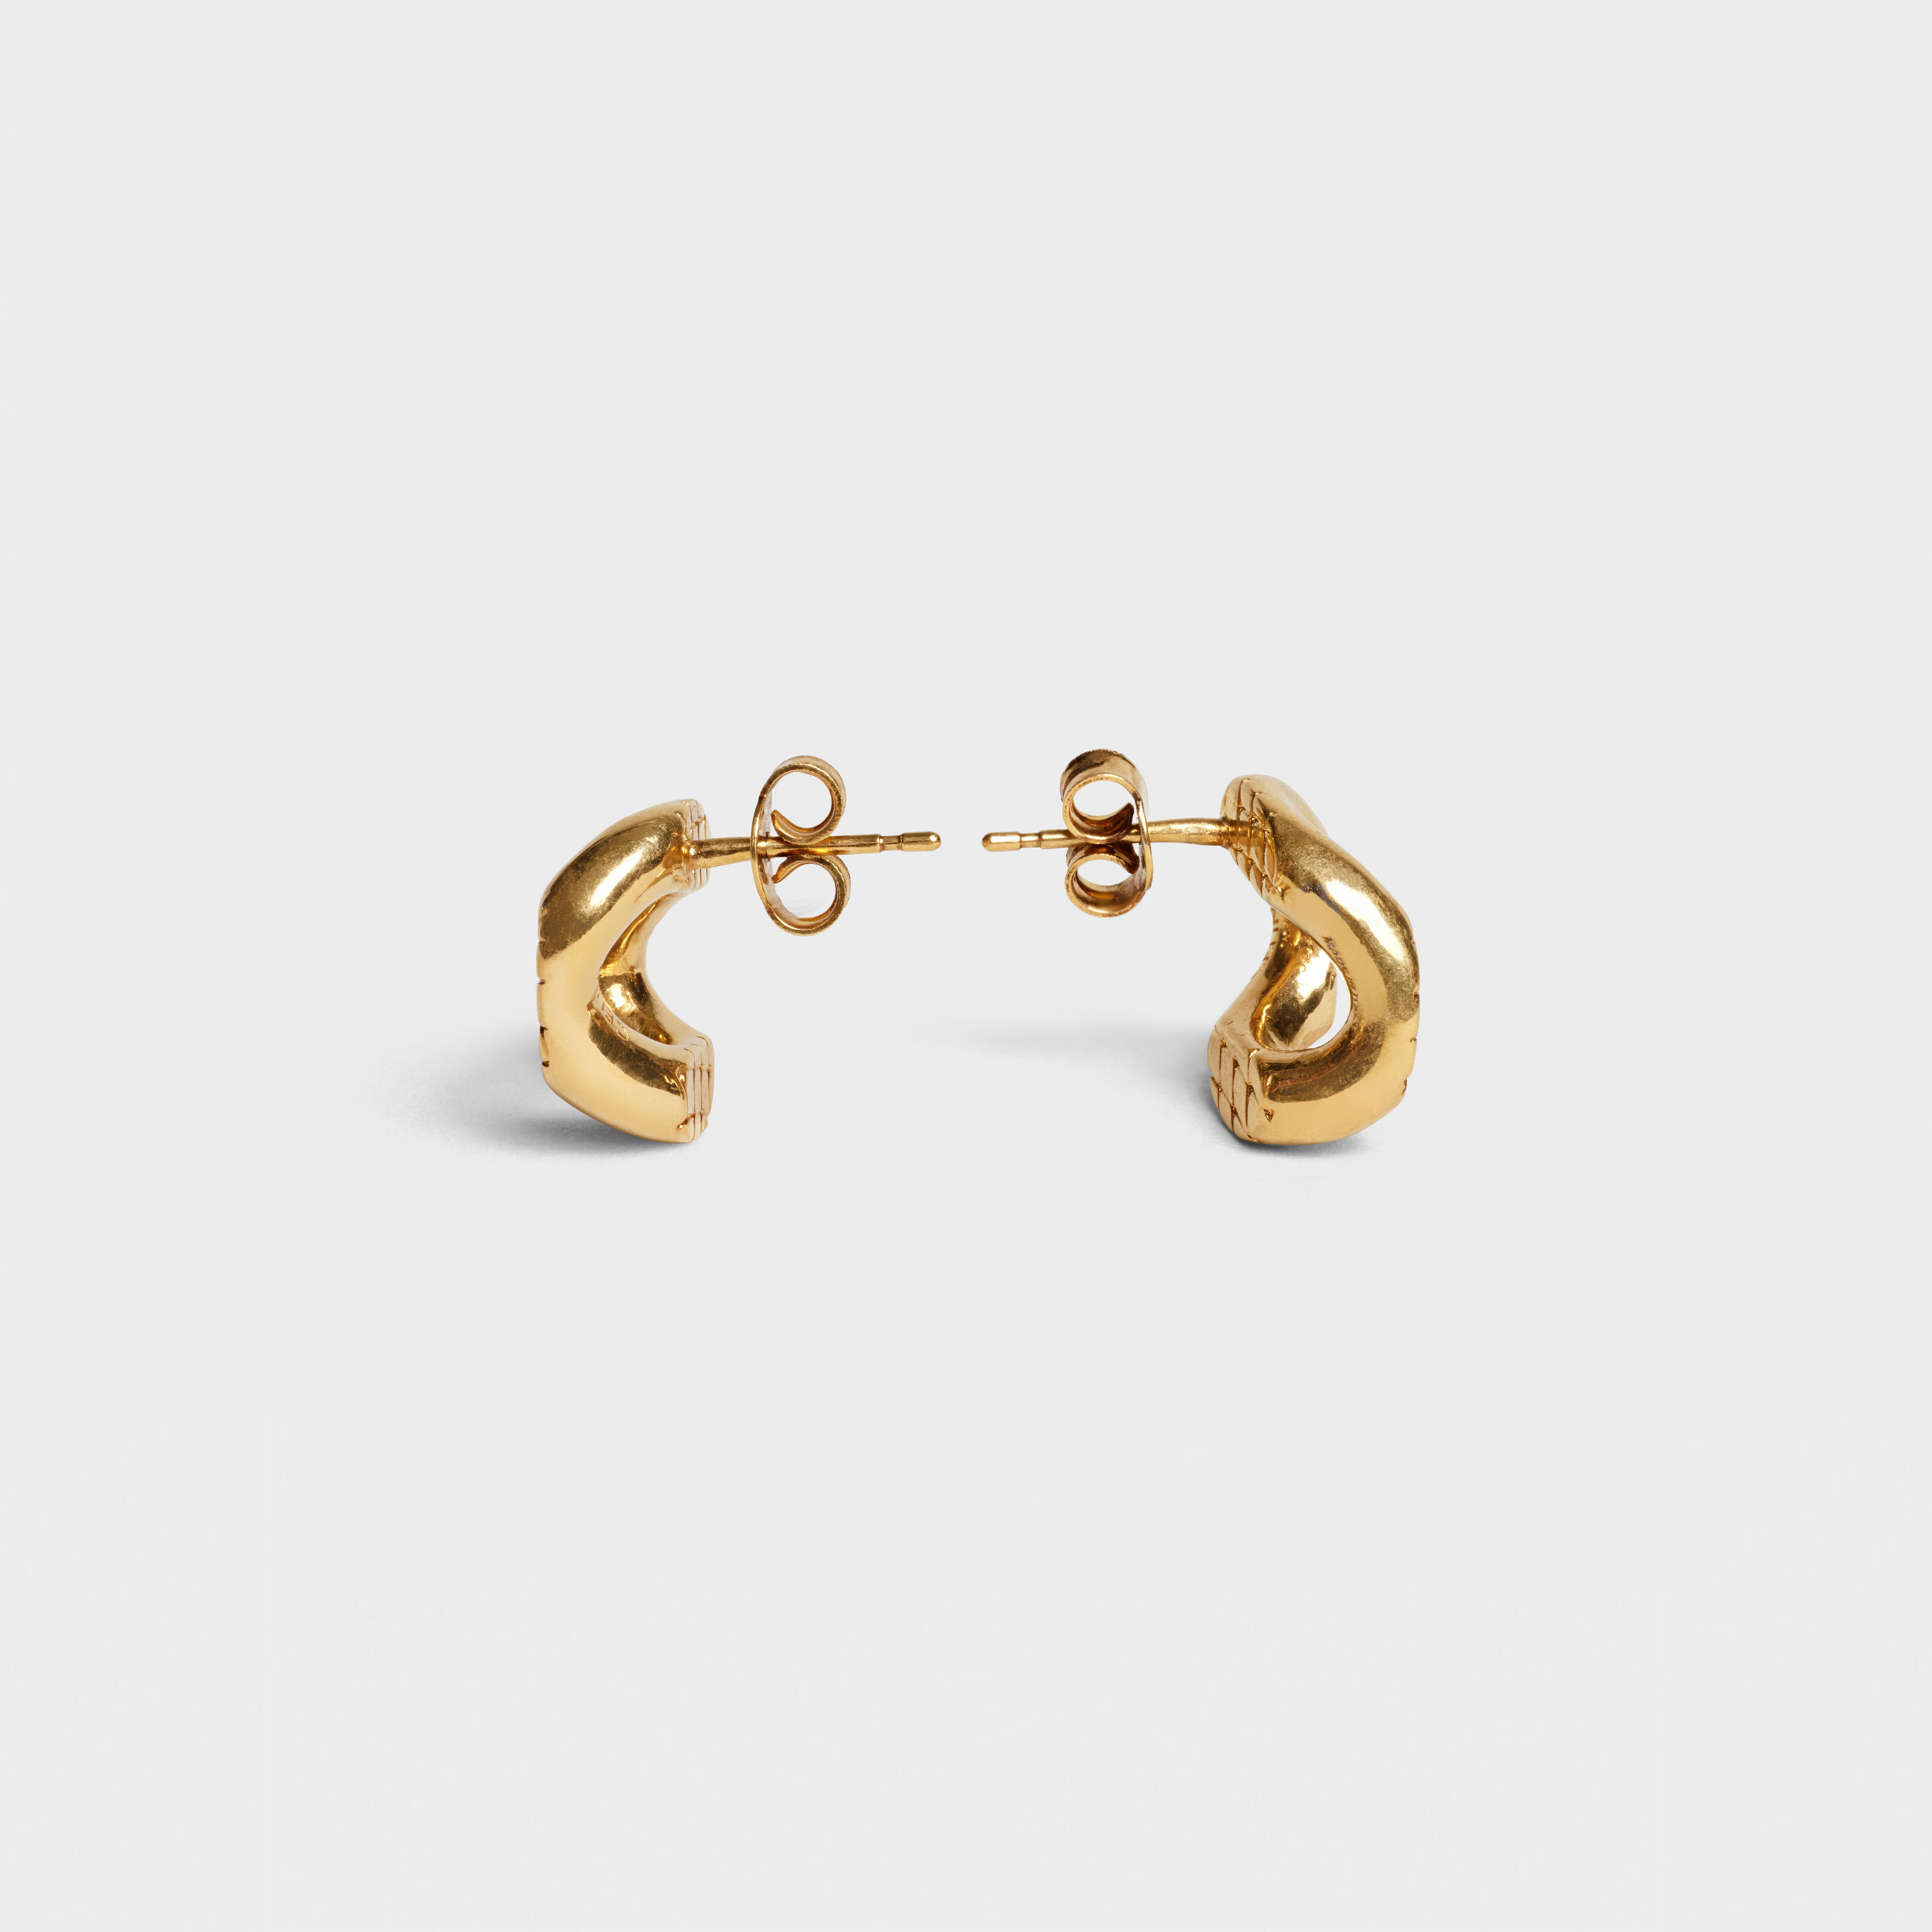 Celine Animals studs in brass with vintage gold finish | CELINE